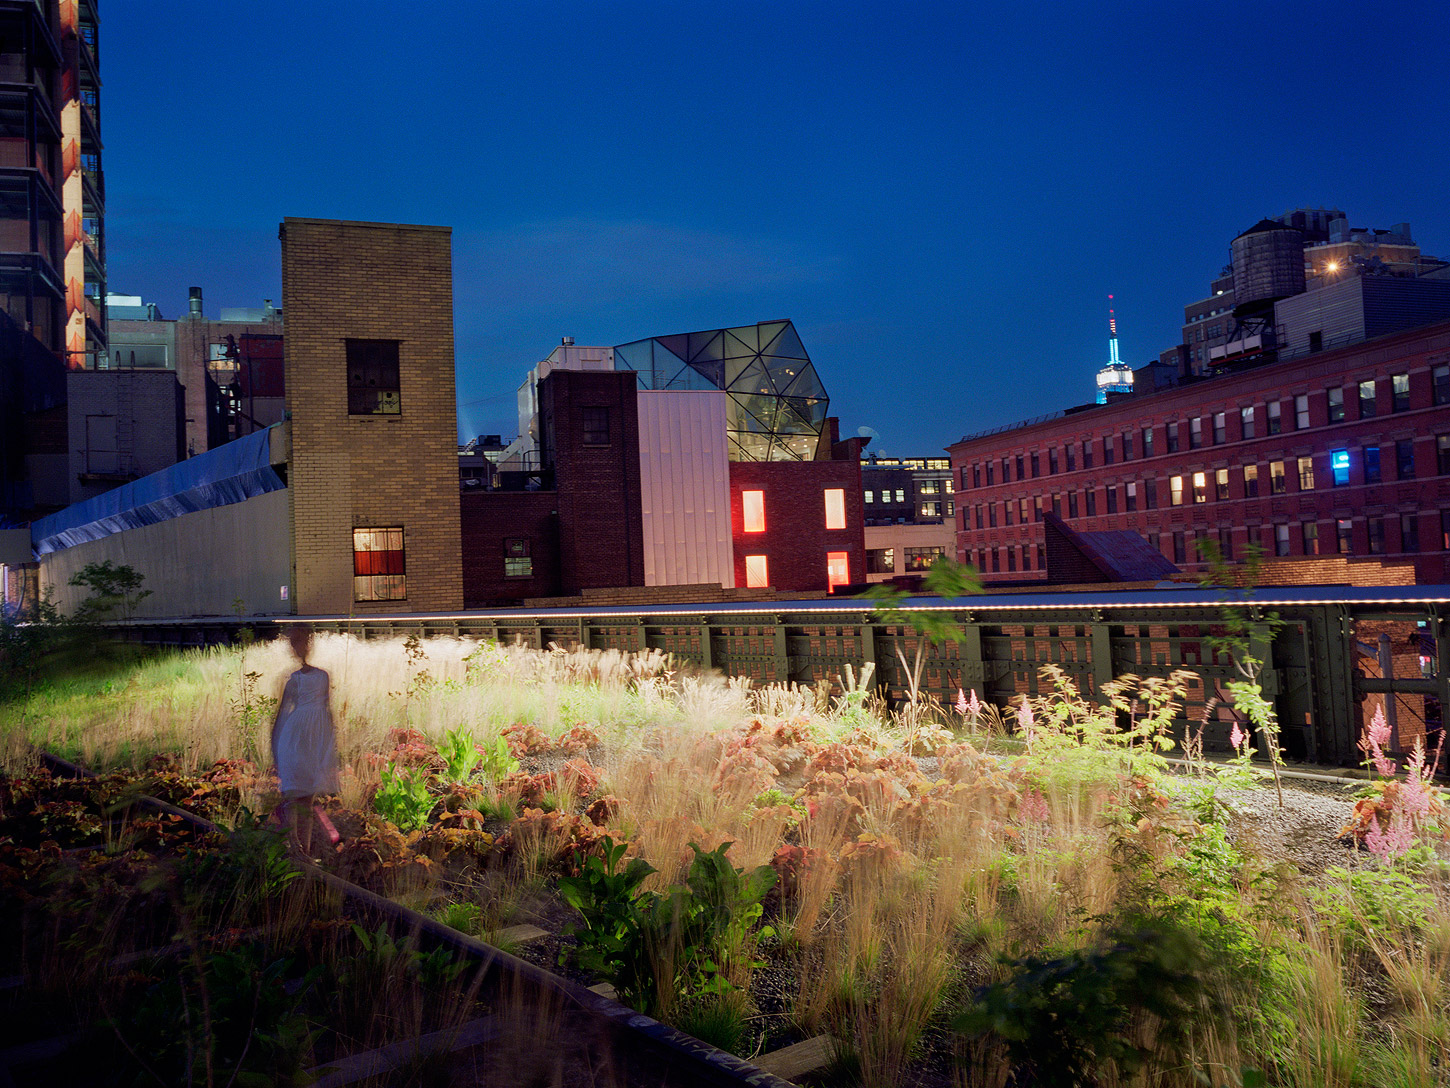 06. Girl on the Highline, New York City, 2009